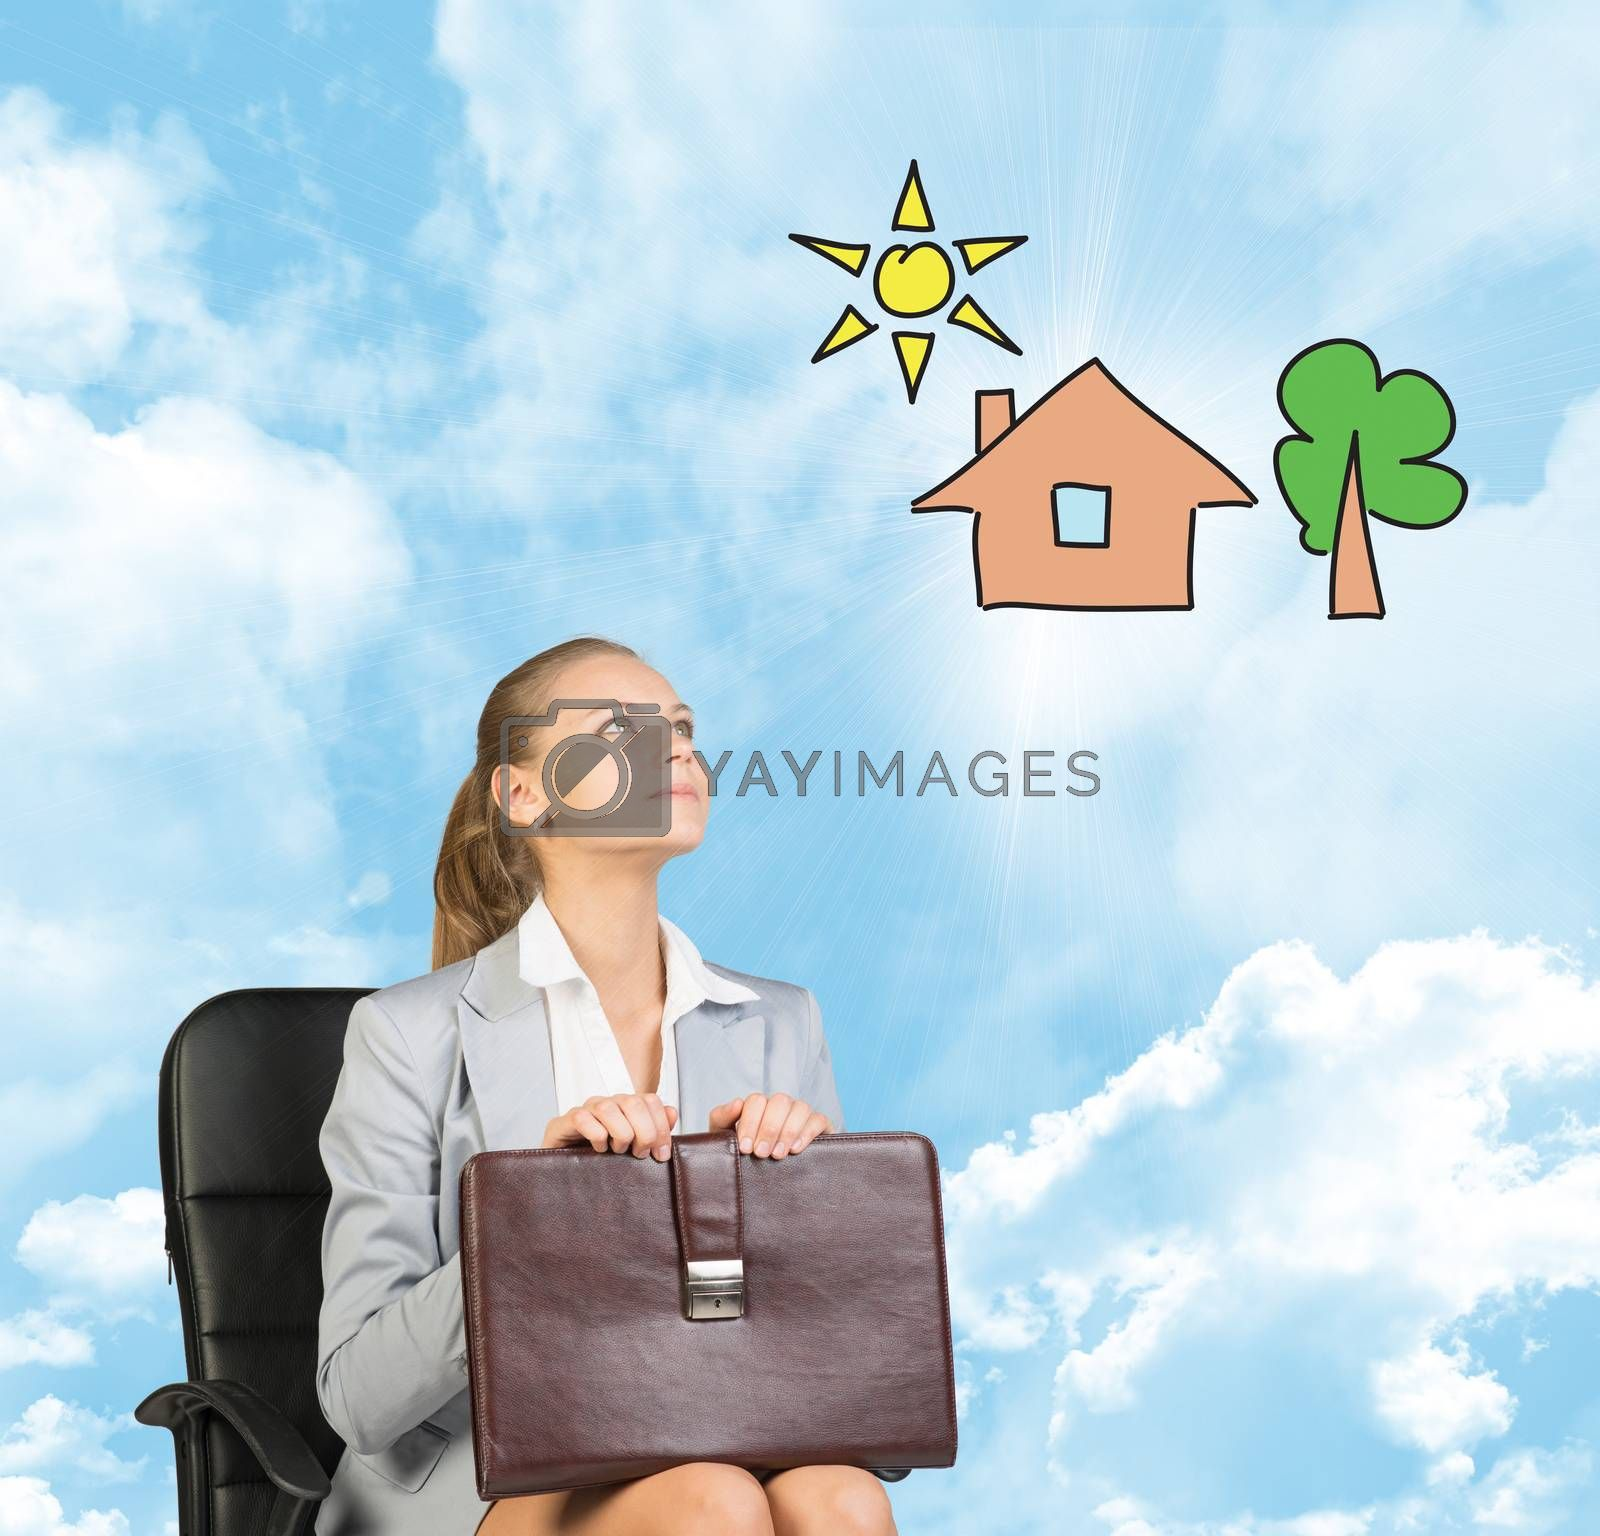 Business woman in skirt, blouse and jacket, sitting on chair and holding briefcase imagines house with tree. Against background of blue sky and clouds